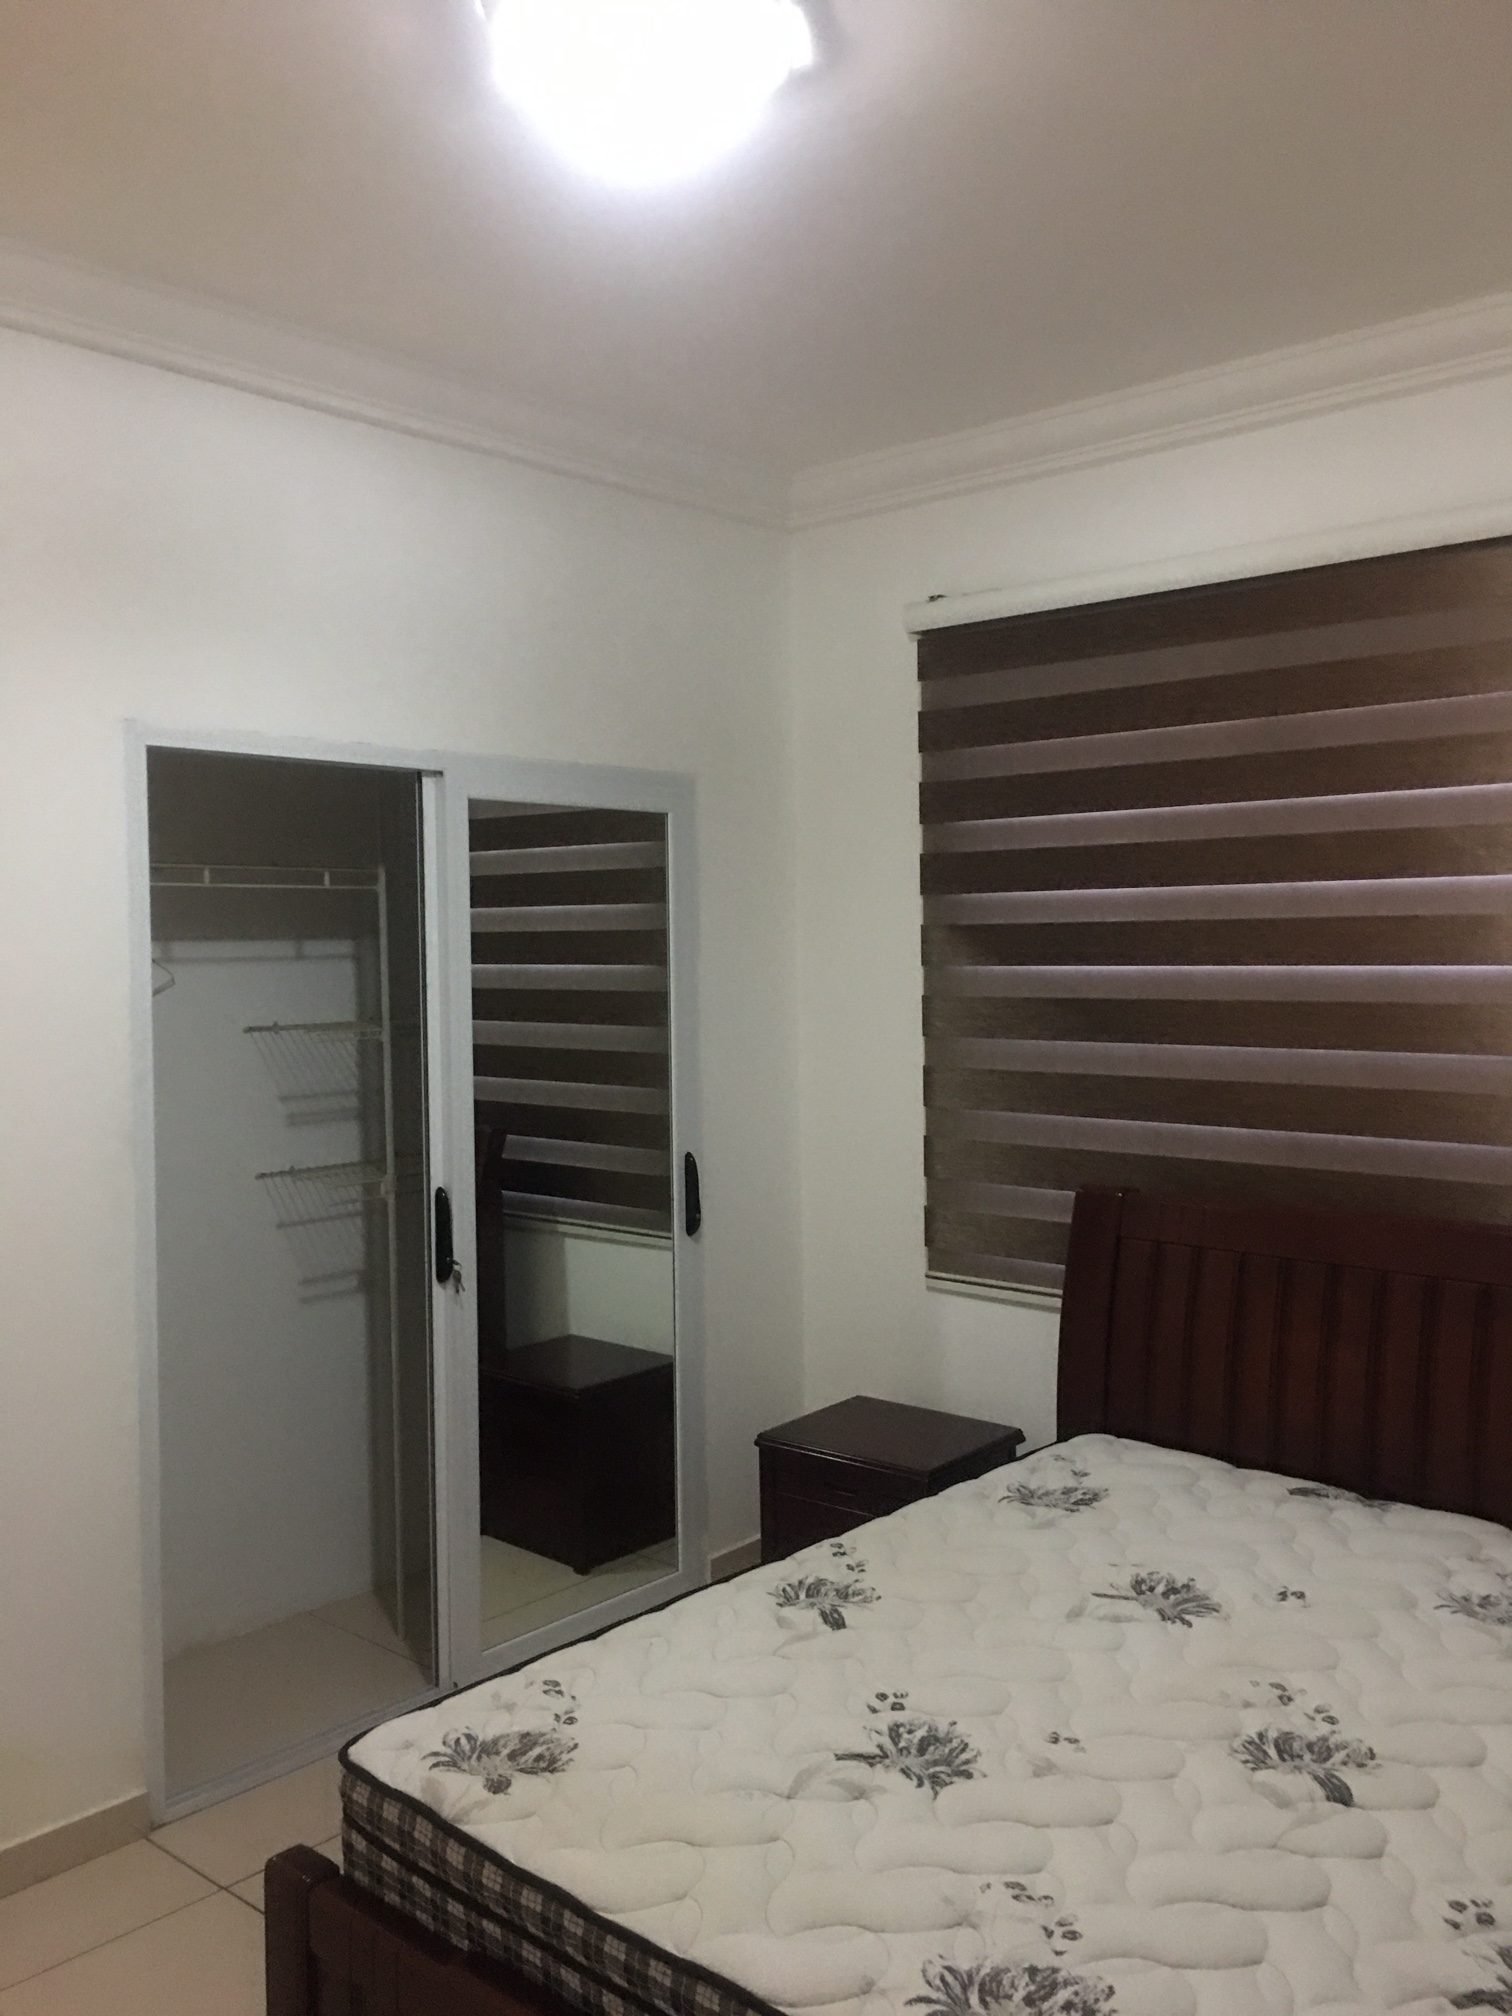 3 BEDROOM FURNISHED APARTMENT FOR RENT IN AIRPORT RESIDENTIAL AREA